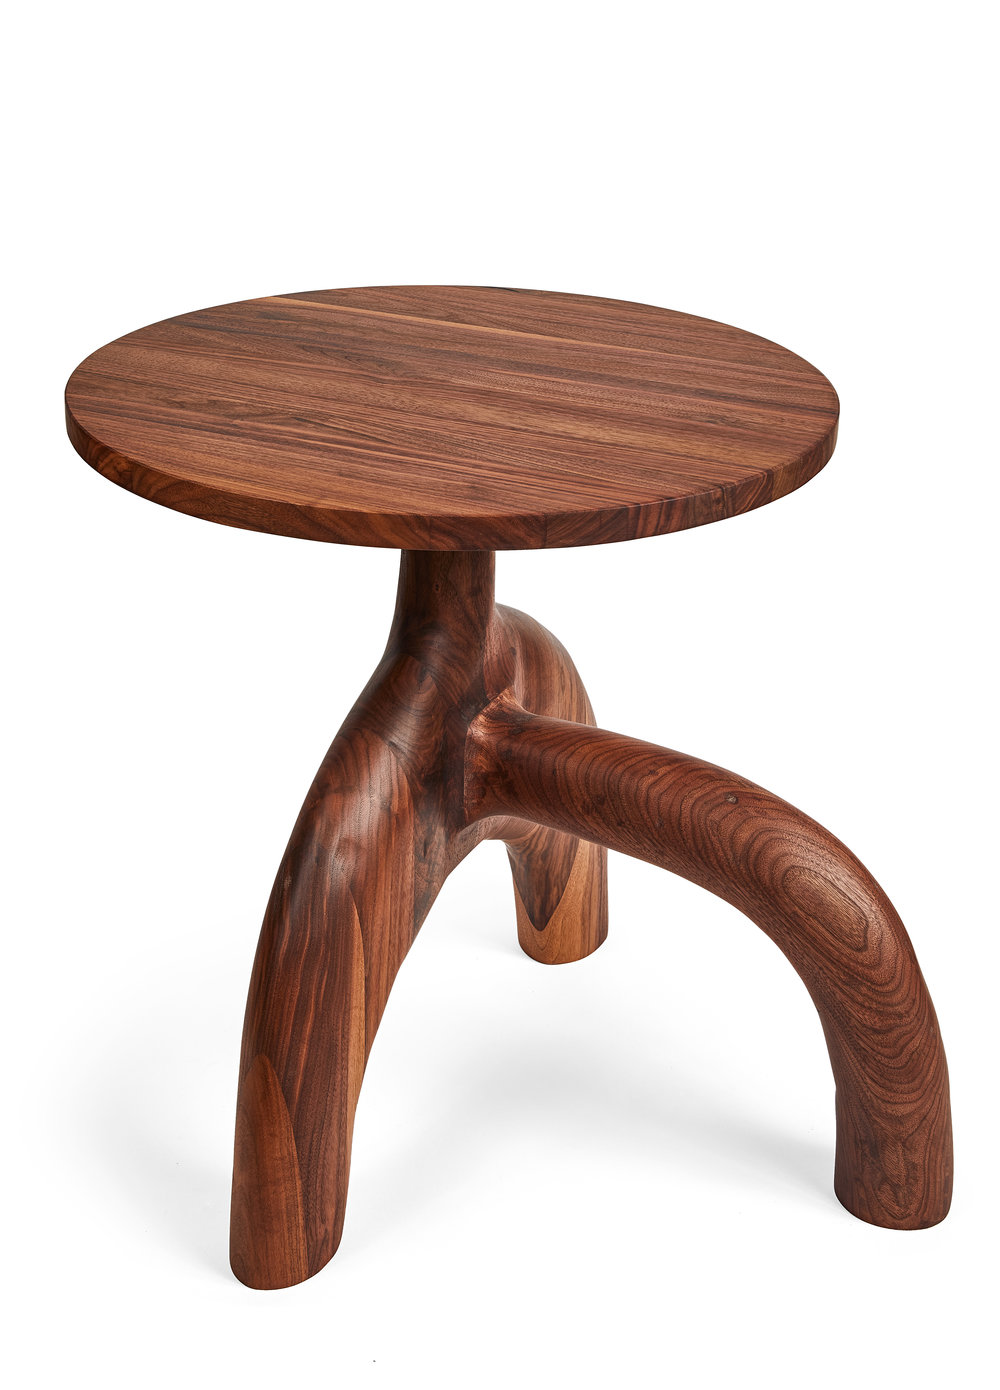 SCULPTURE 001 WALNUT SIDE TABLE (2).jpg